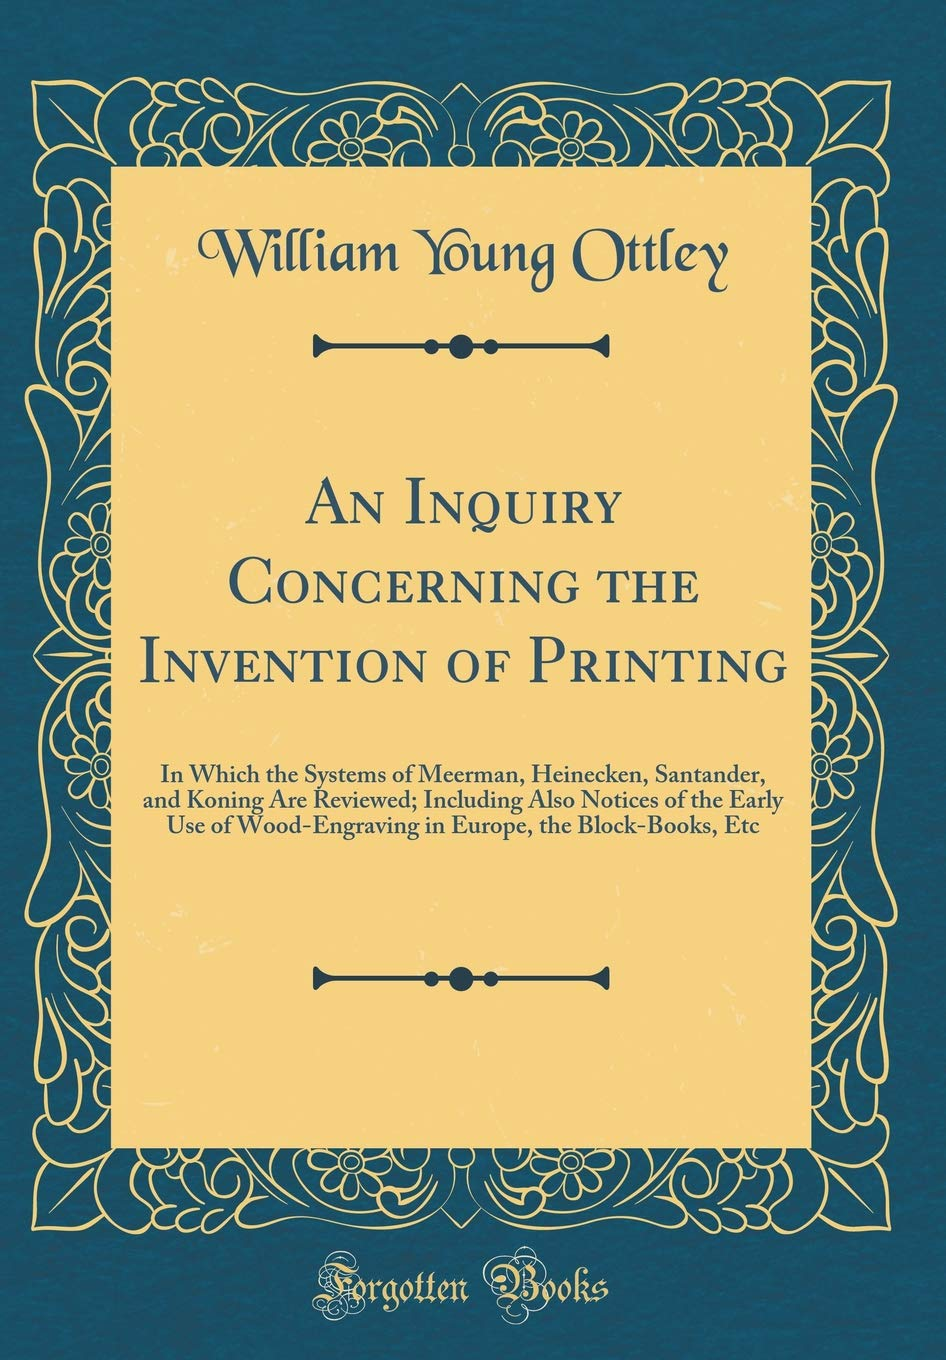 An Inquiry Concerning the Invention of Printing: In Which the Systems of Meerman, Heinecken, Santander, and Koning Are Reviewed; Including Also ... the Block-Books, Etc (Classic Reprint) pdf